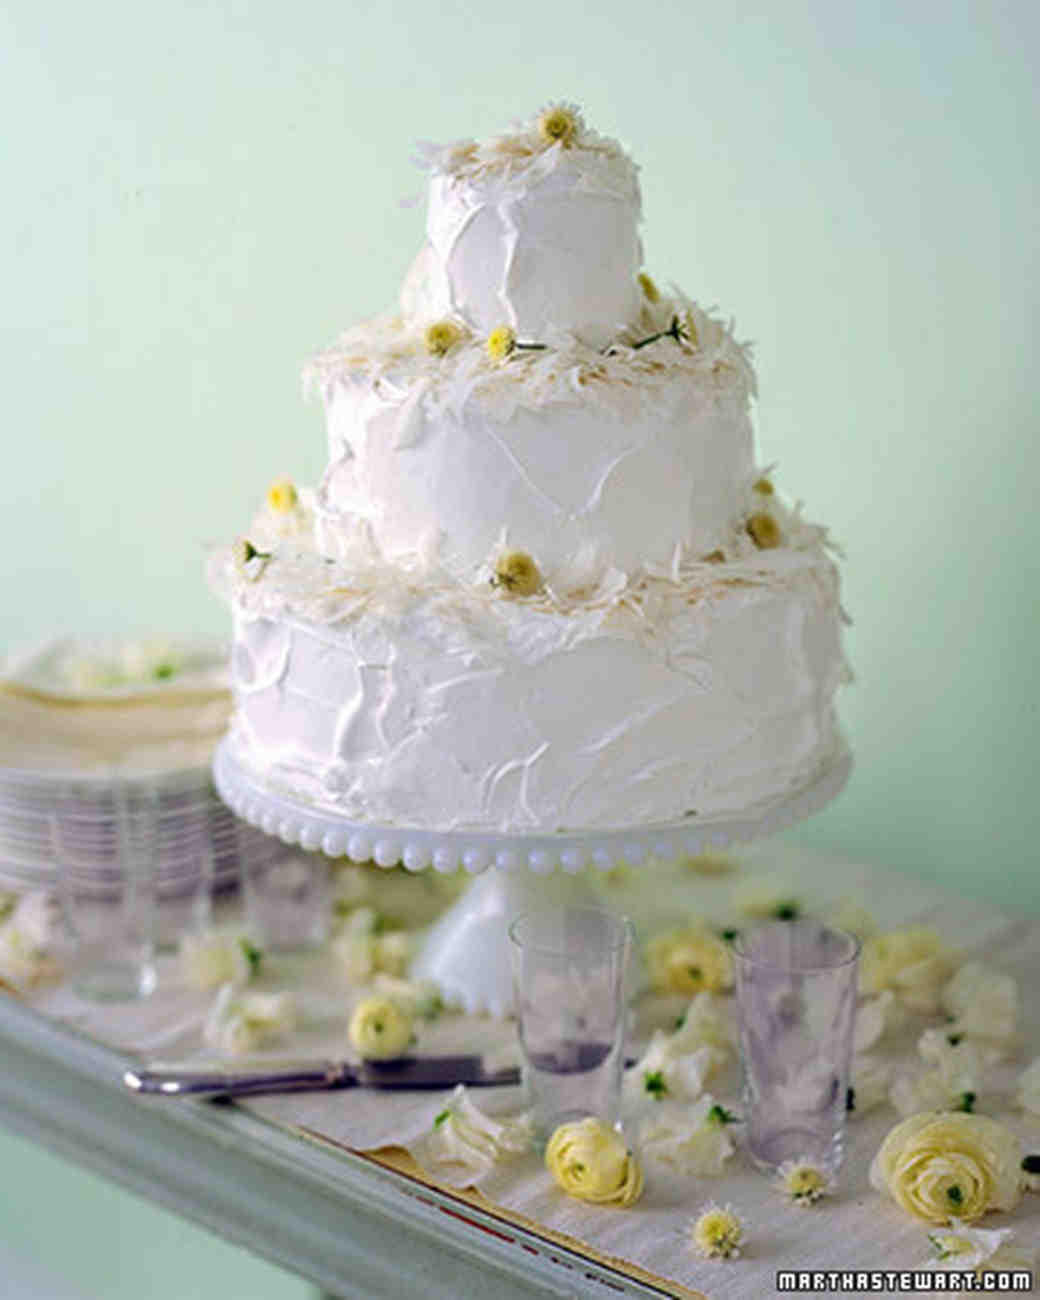 Coconut Wedding Cakes Martha Stewart Weddings - Pineapple Wedding Cake